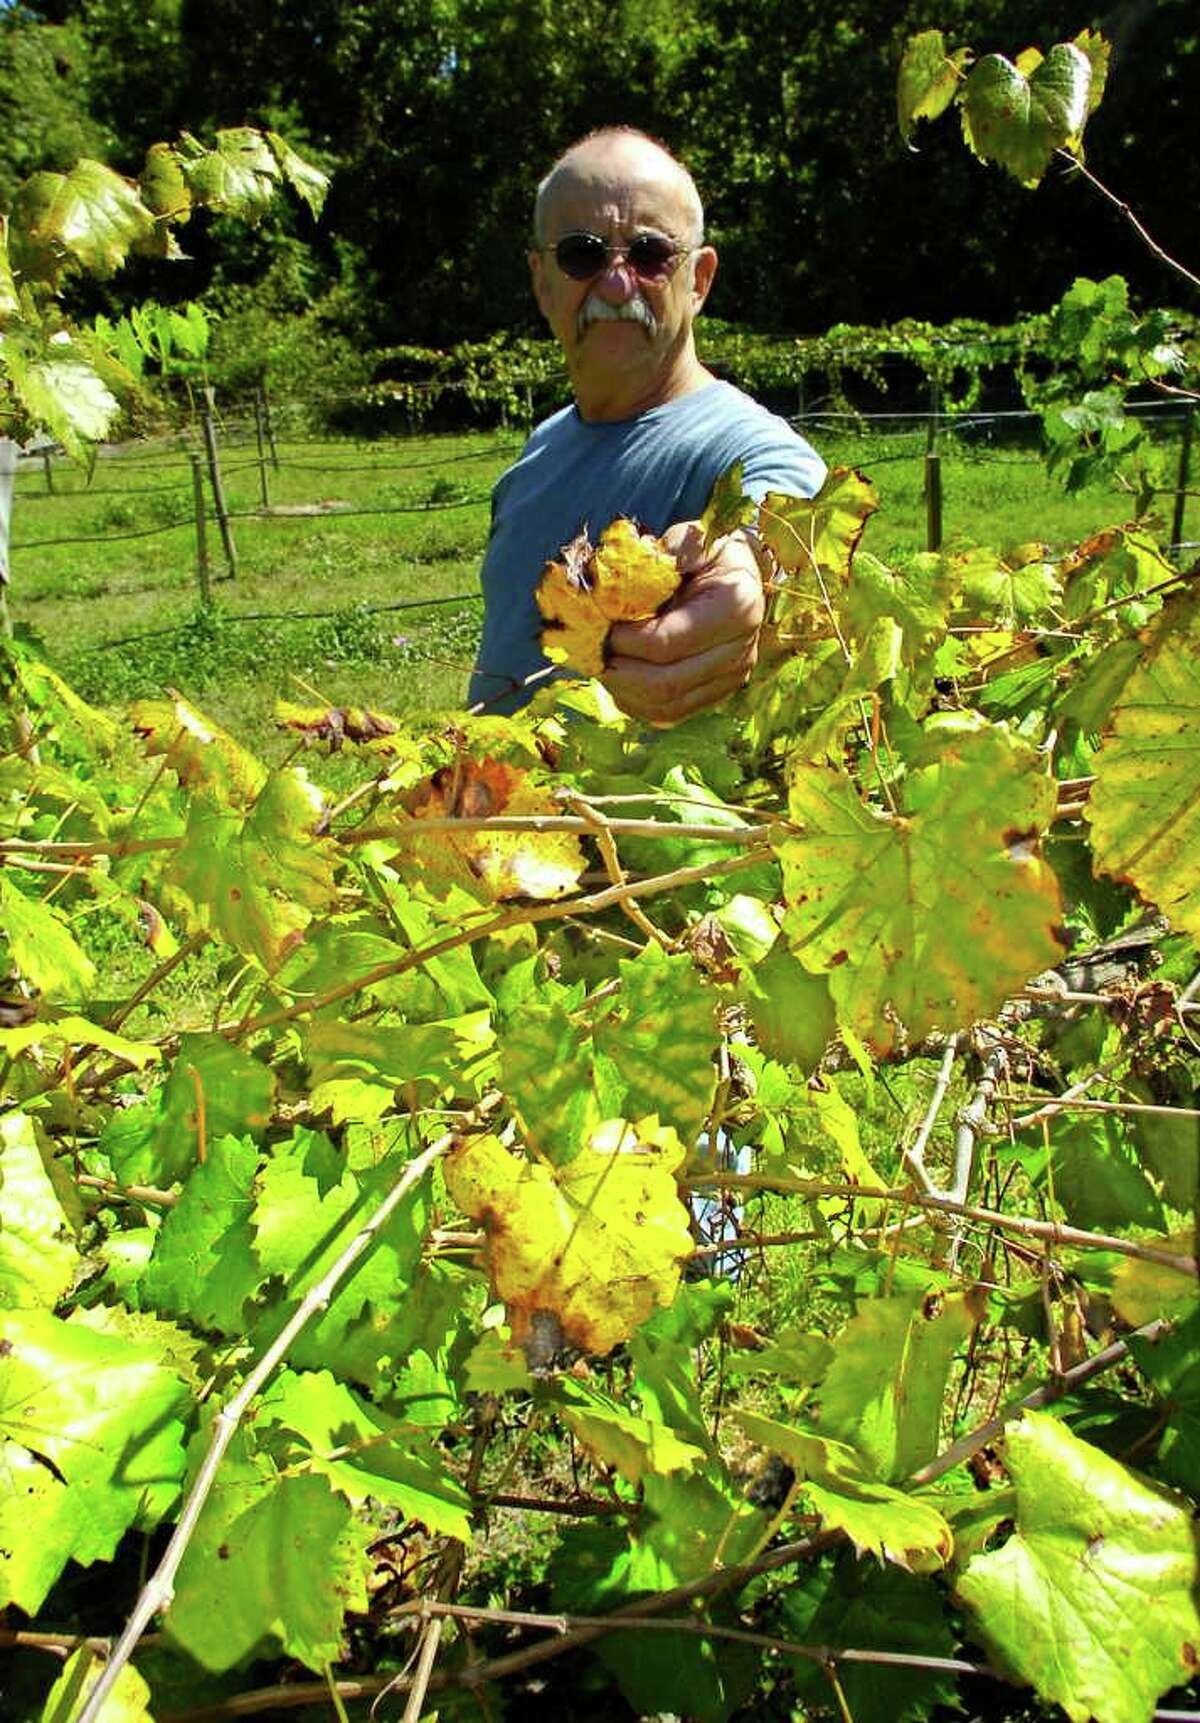 Jim Mathews, Piney Woods Winery Vineyard Manager, looks over a plot of Muscadine grape vines, that are showing signs of lack of water due to the drought, in the yellowing and browning of the leaves. The plants are watered twice a day, but with the ground so dry, the total amount of the water does not always make it to the roots of the plants. Piney Woods Winery grows Muscadine grapes that require a lot of irrigation through the summer months. Small businesses are having a tough time weathering through the drought, some have said they've seen sales dip by half since a year ago. Dave Ryan/The Enterprise